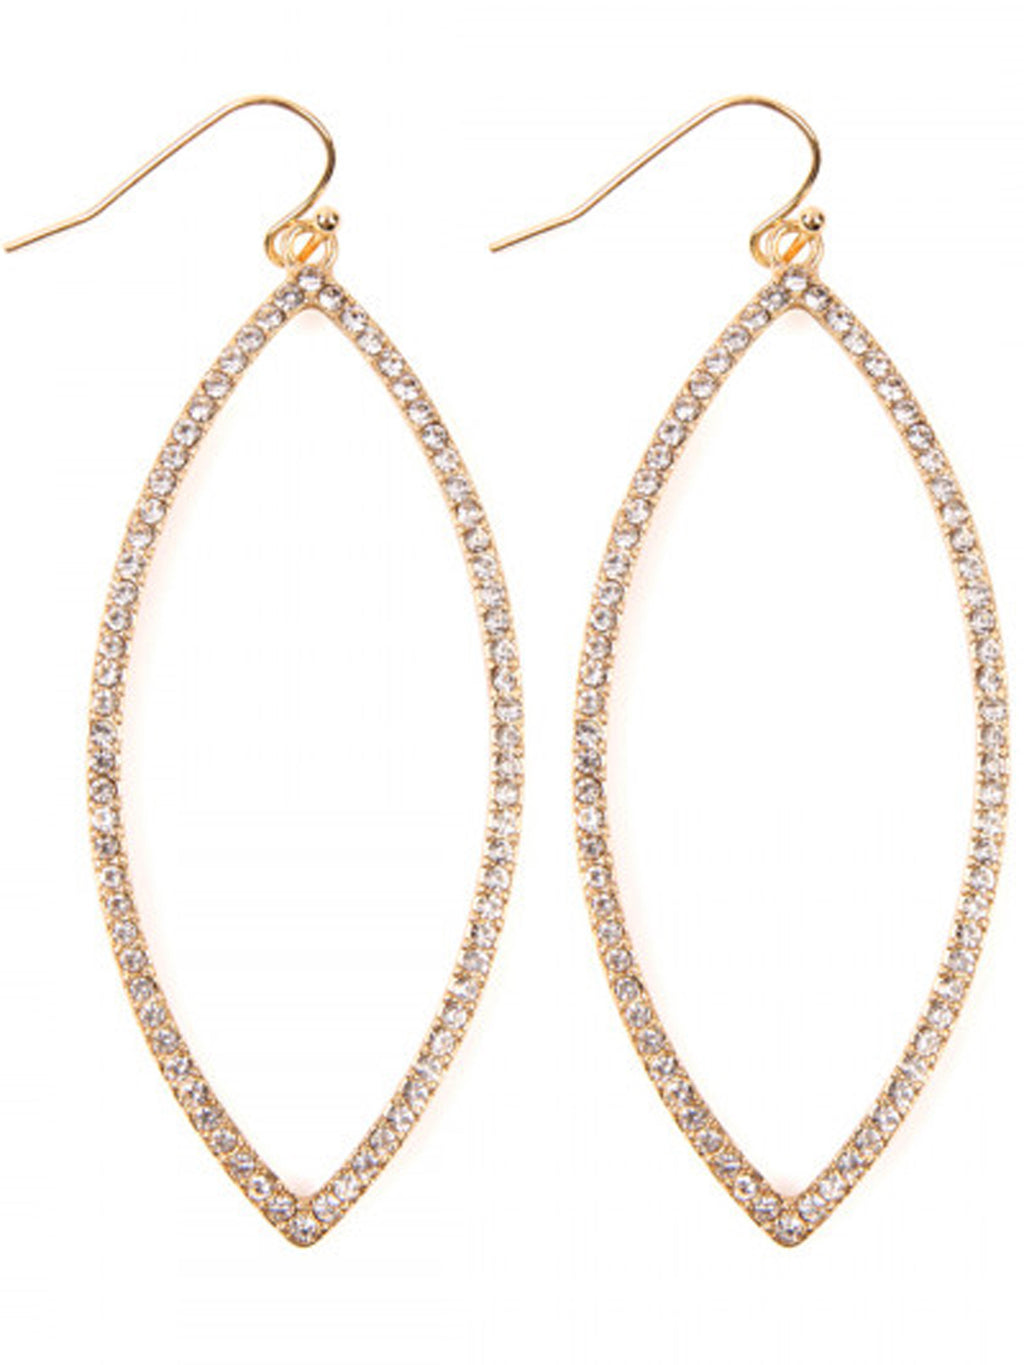 Gold Oval Open Marquise Rhinestones Earrings